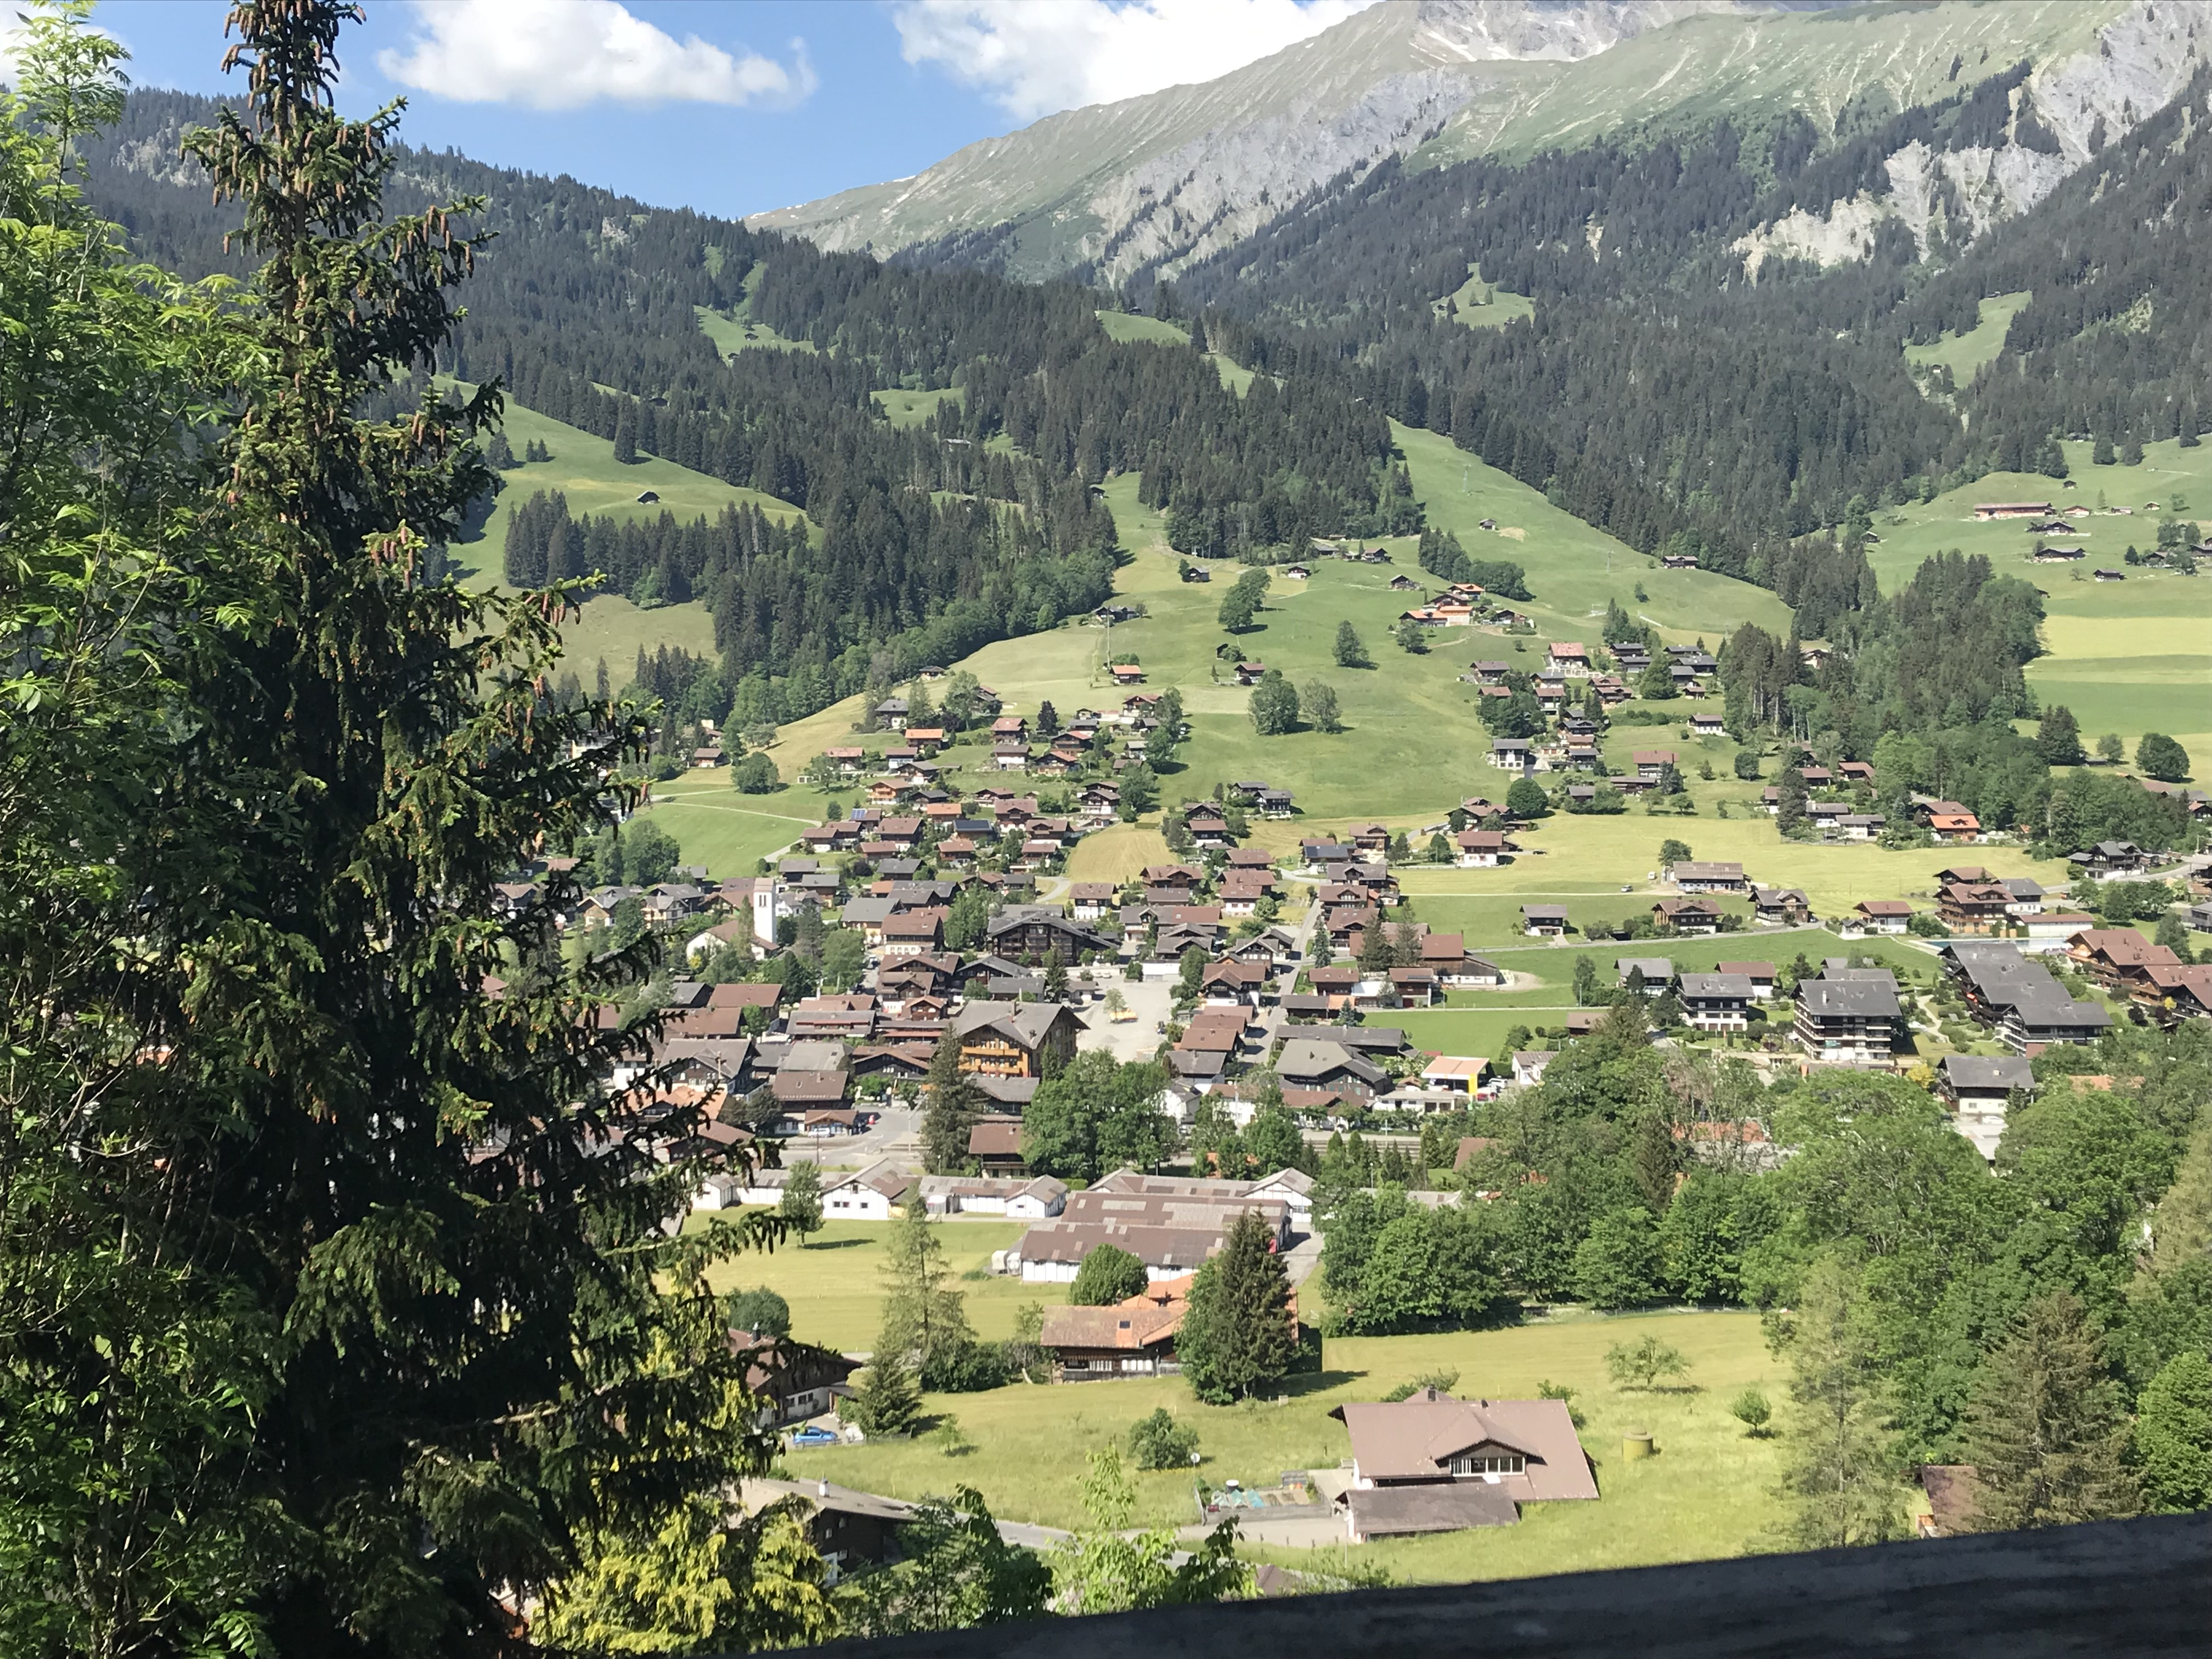 lenk is a small mountain town.jpg